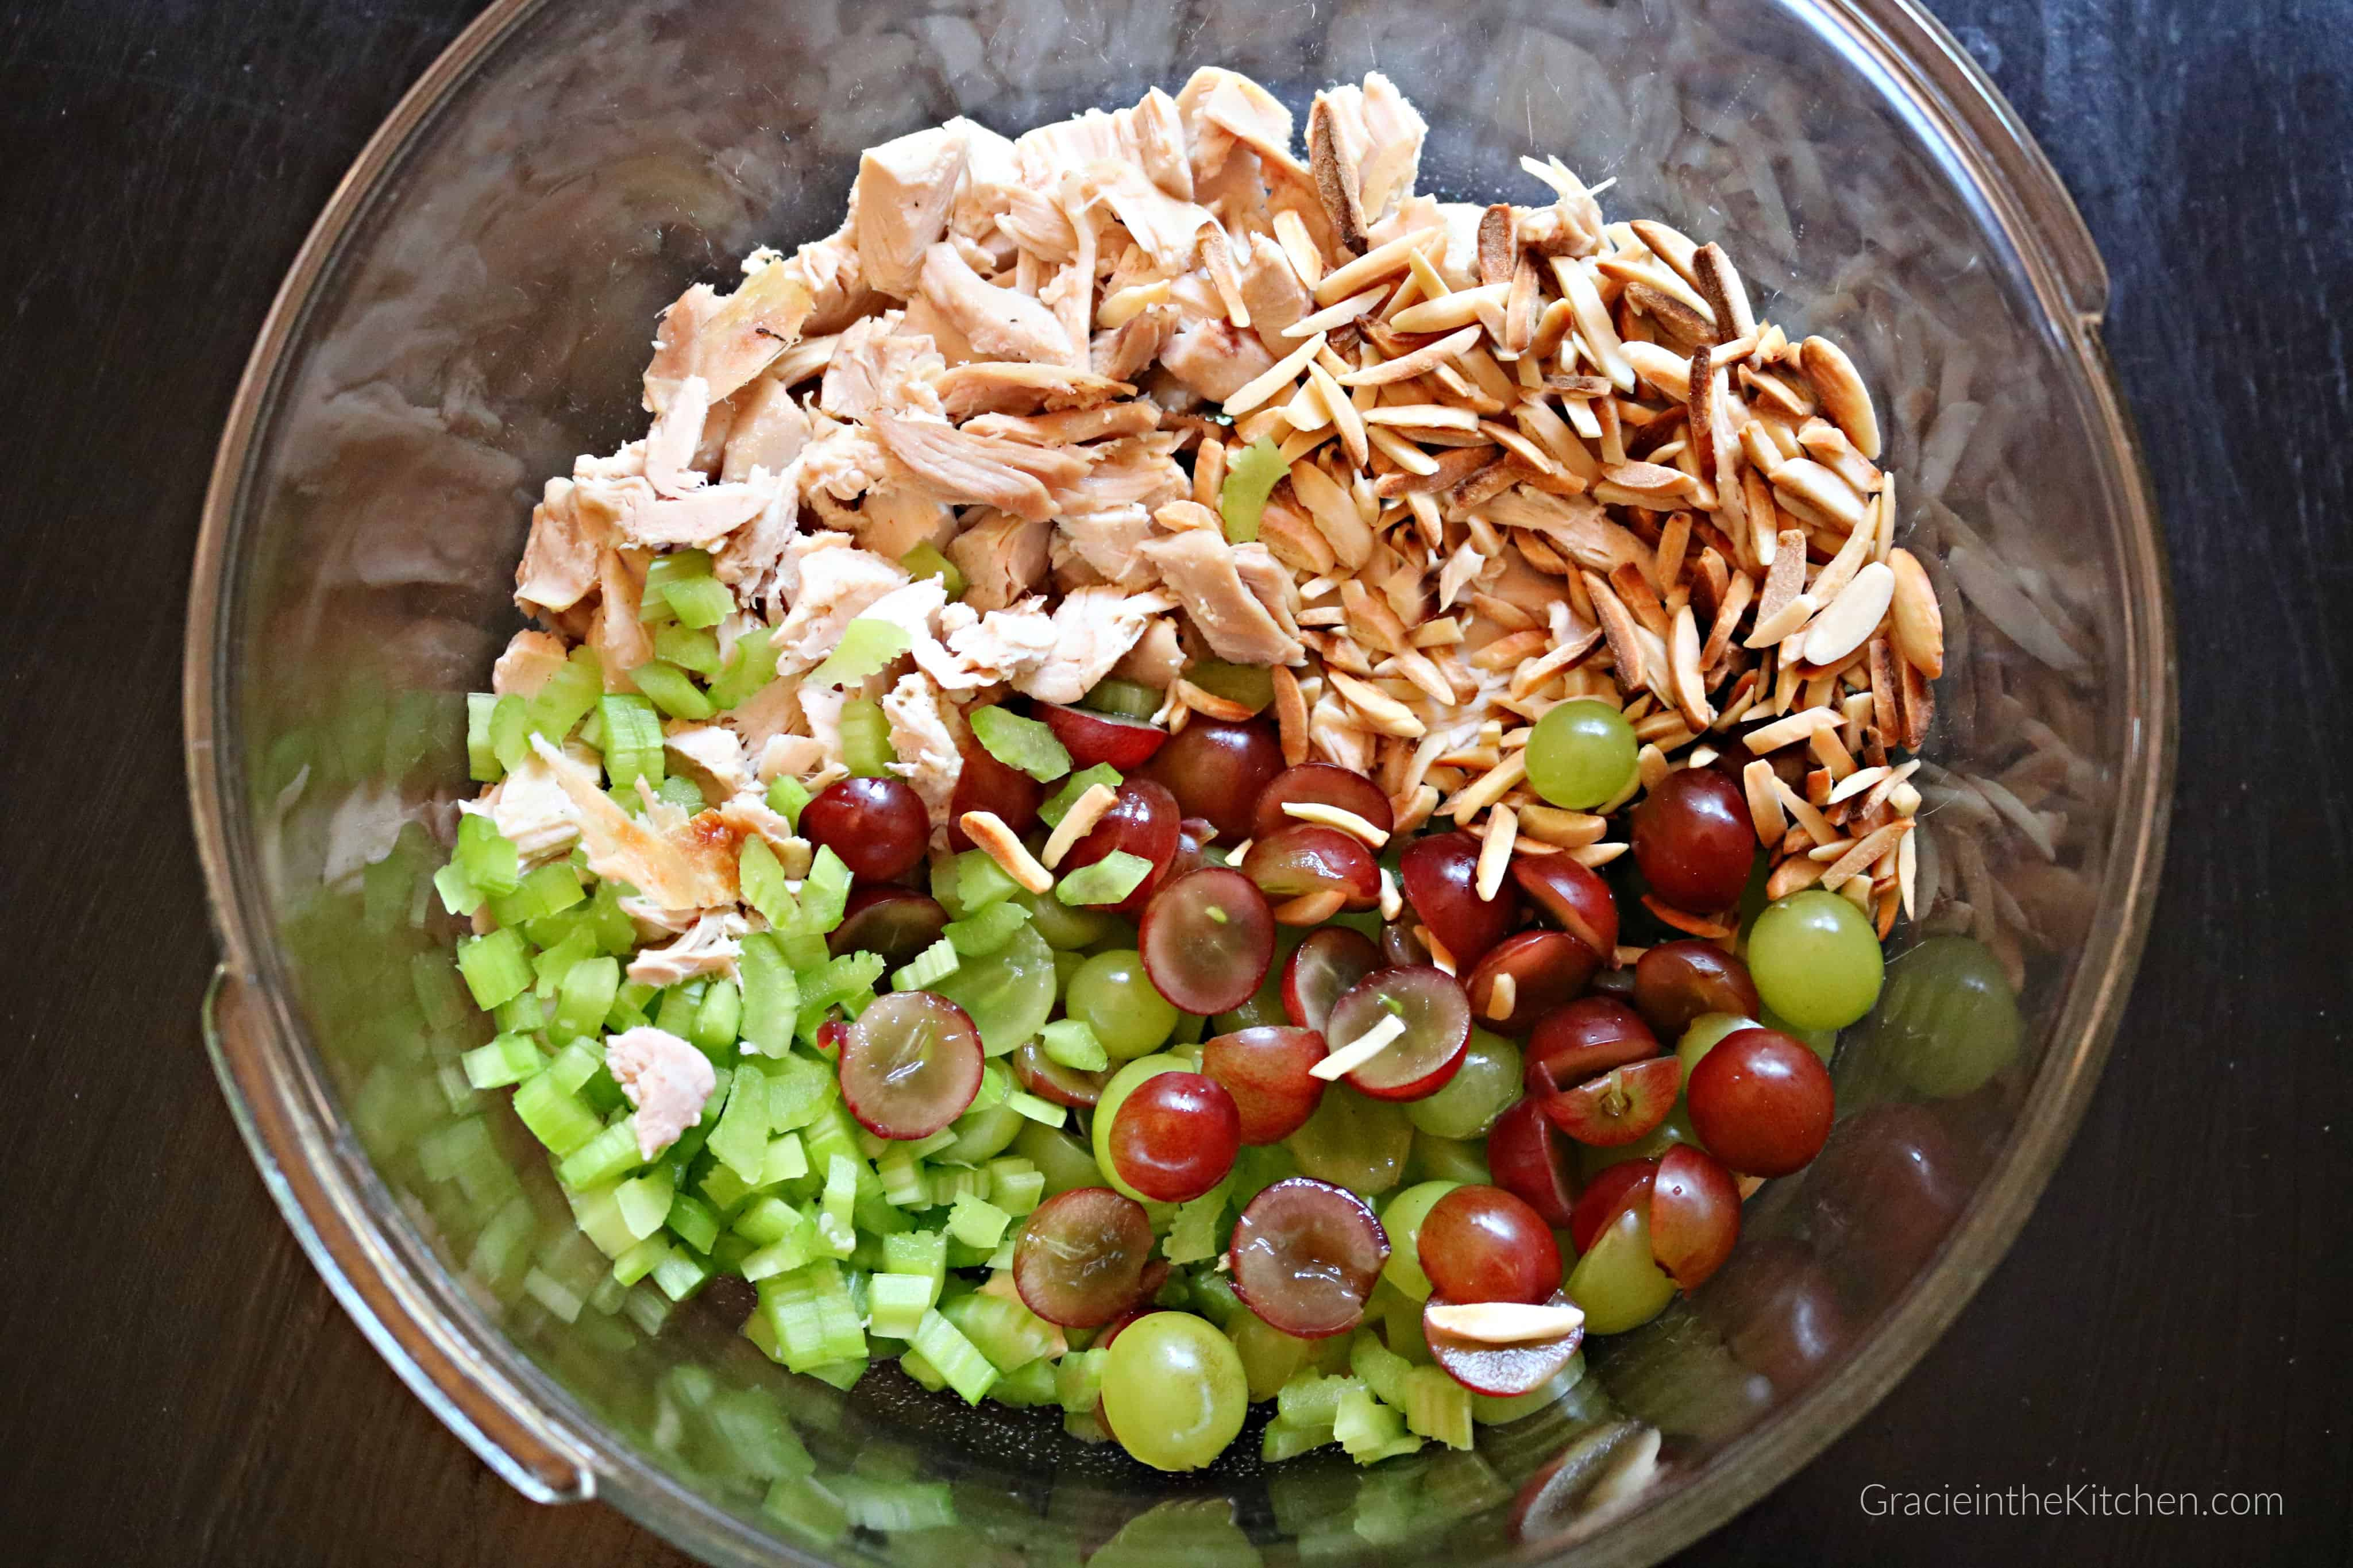 Easy Almond Chicken Salad- This recipe is the best! So flavorful!